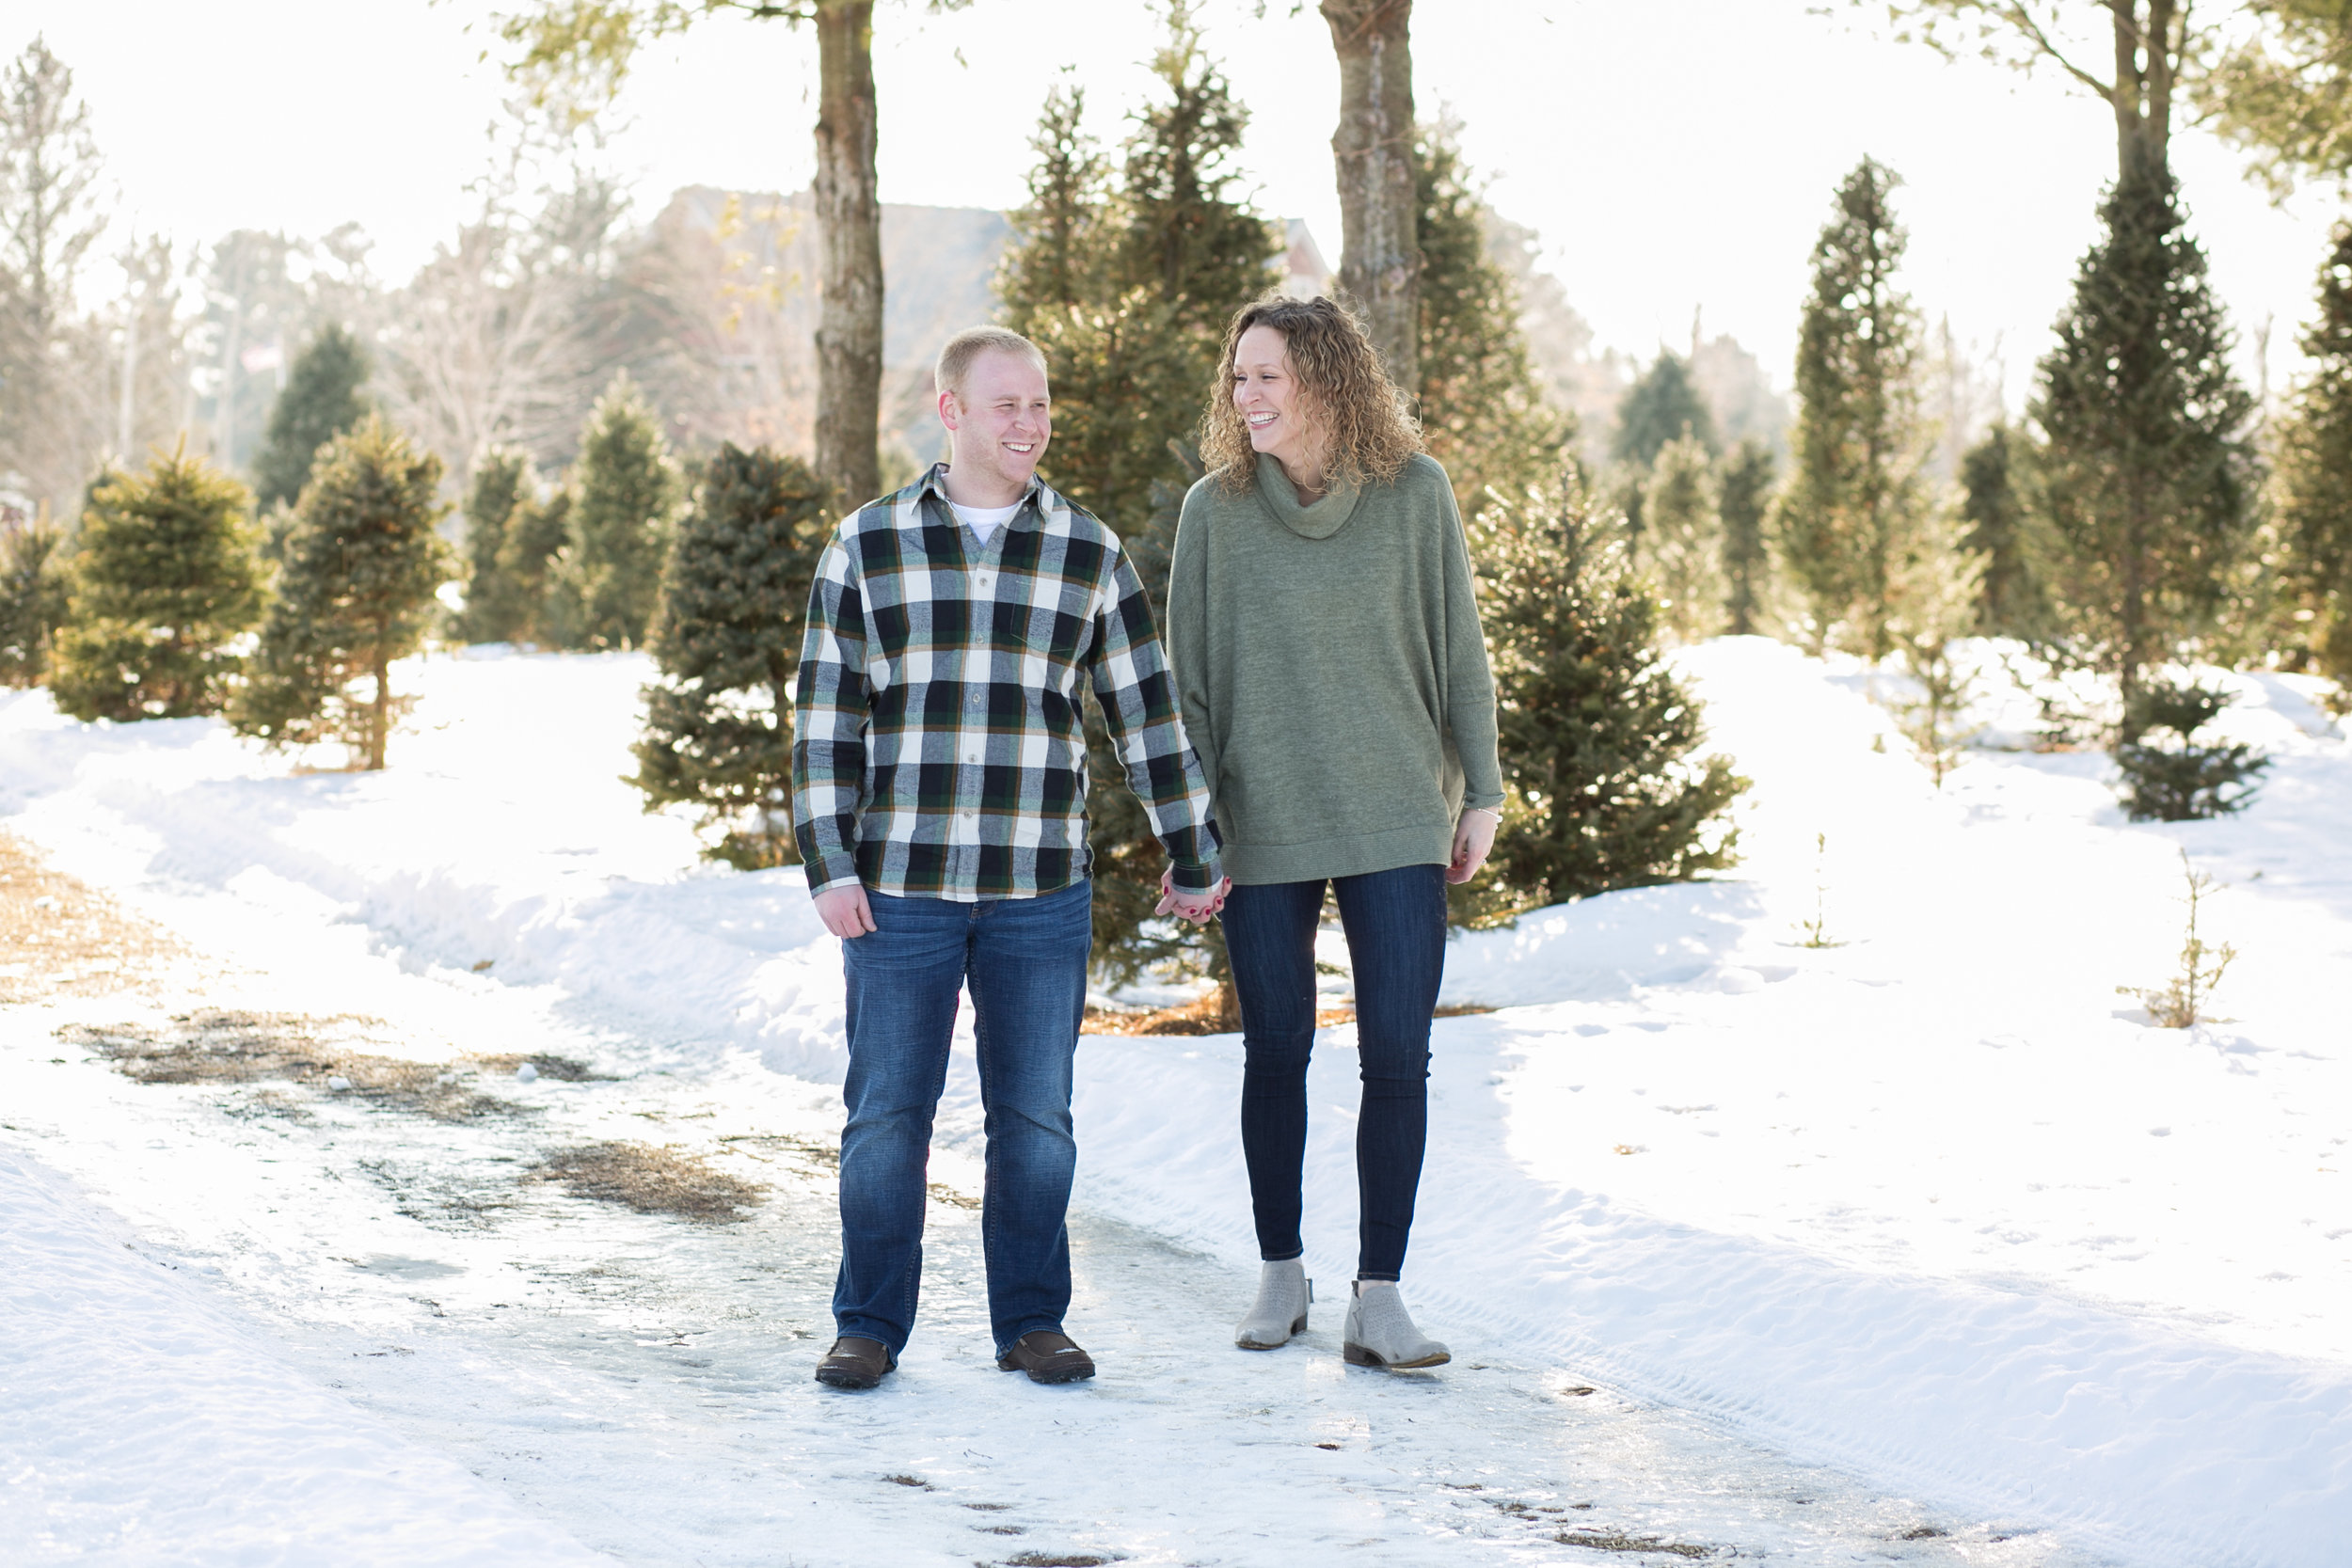 Tree Farm Engagement Photo Ideas by Chelsea Bolling Photography